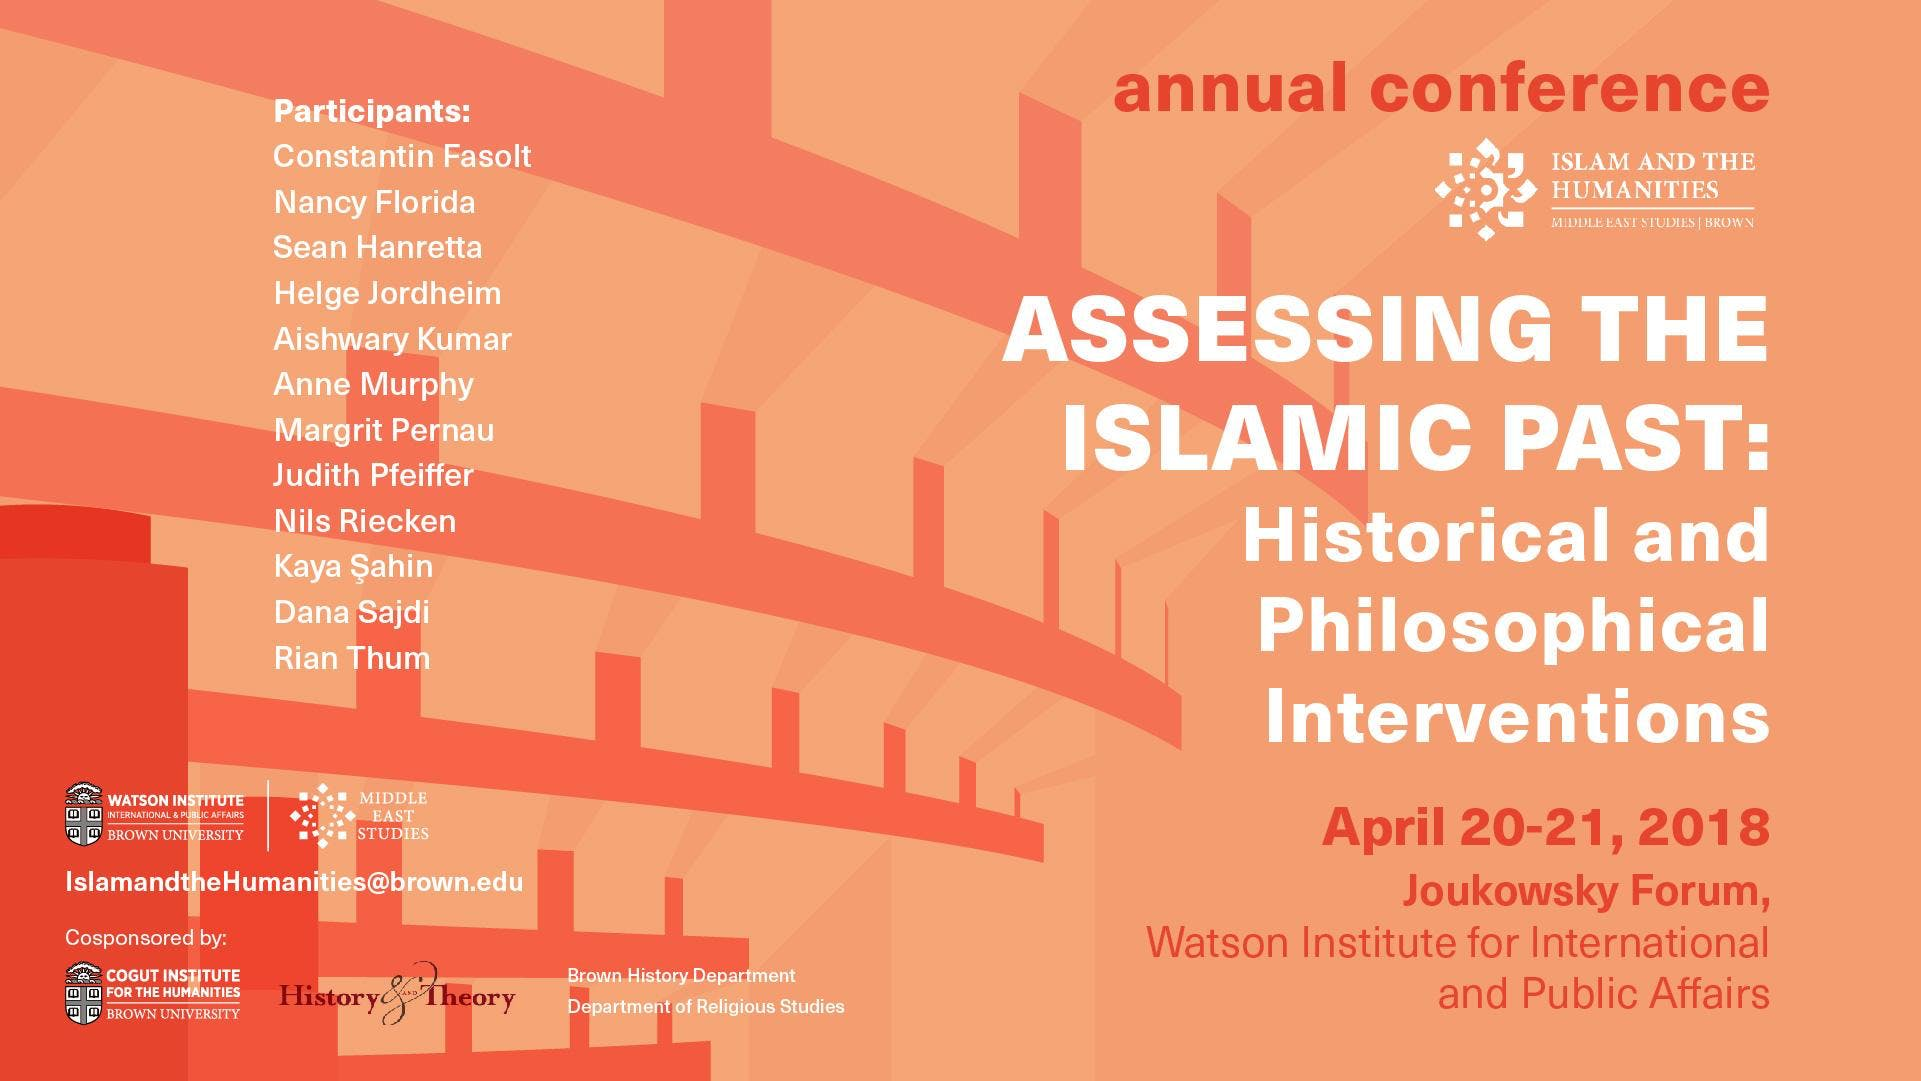 MES Islam and the Humanities 2018 Conference  Assessing the Islamic Past Historical and Philosophical Intervention